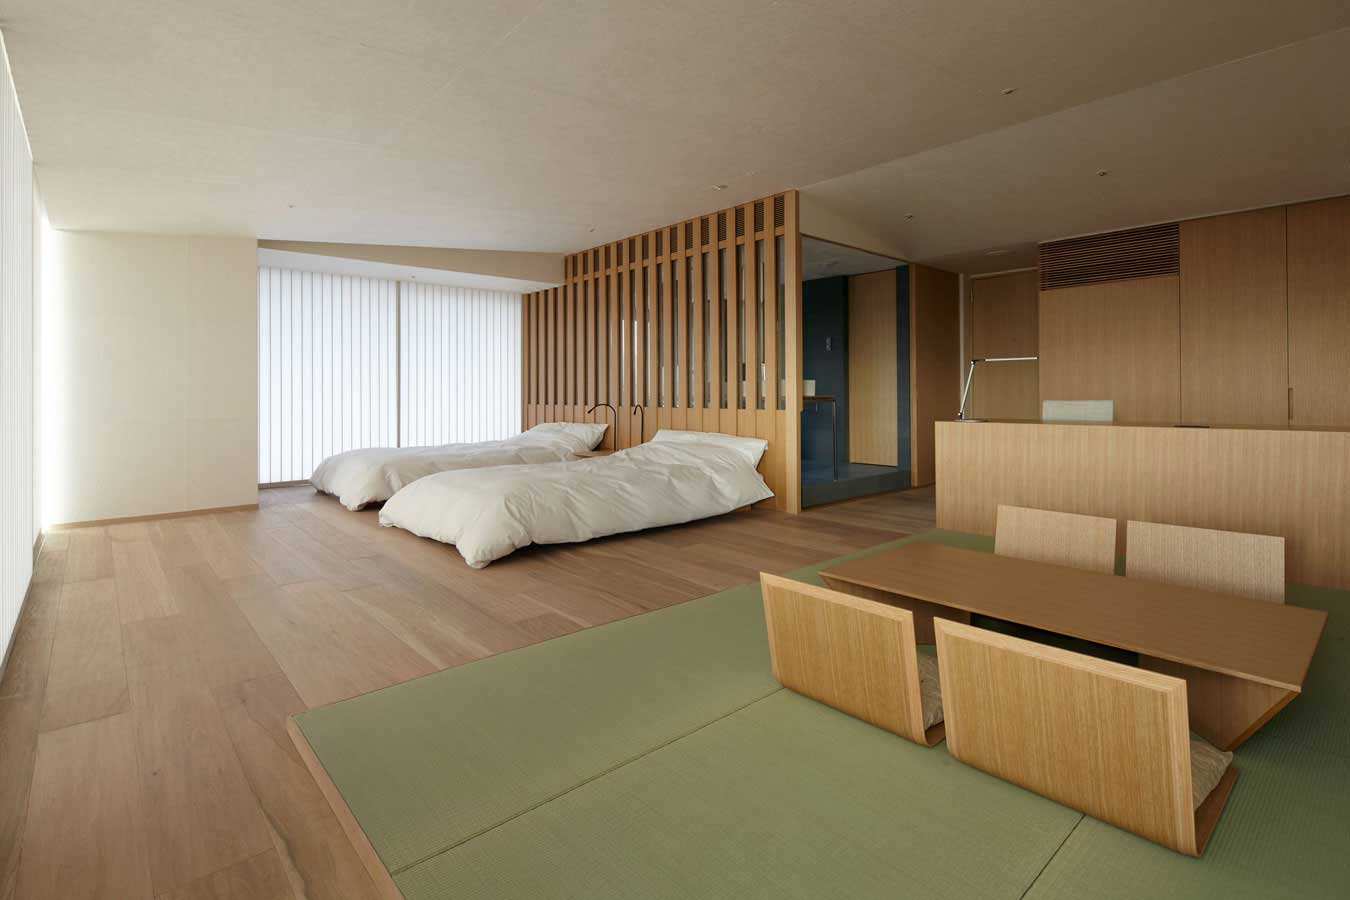 Modern japanese bedroom design 11 designs for Japanese bedroom designs pictures